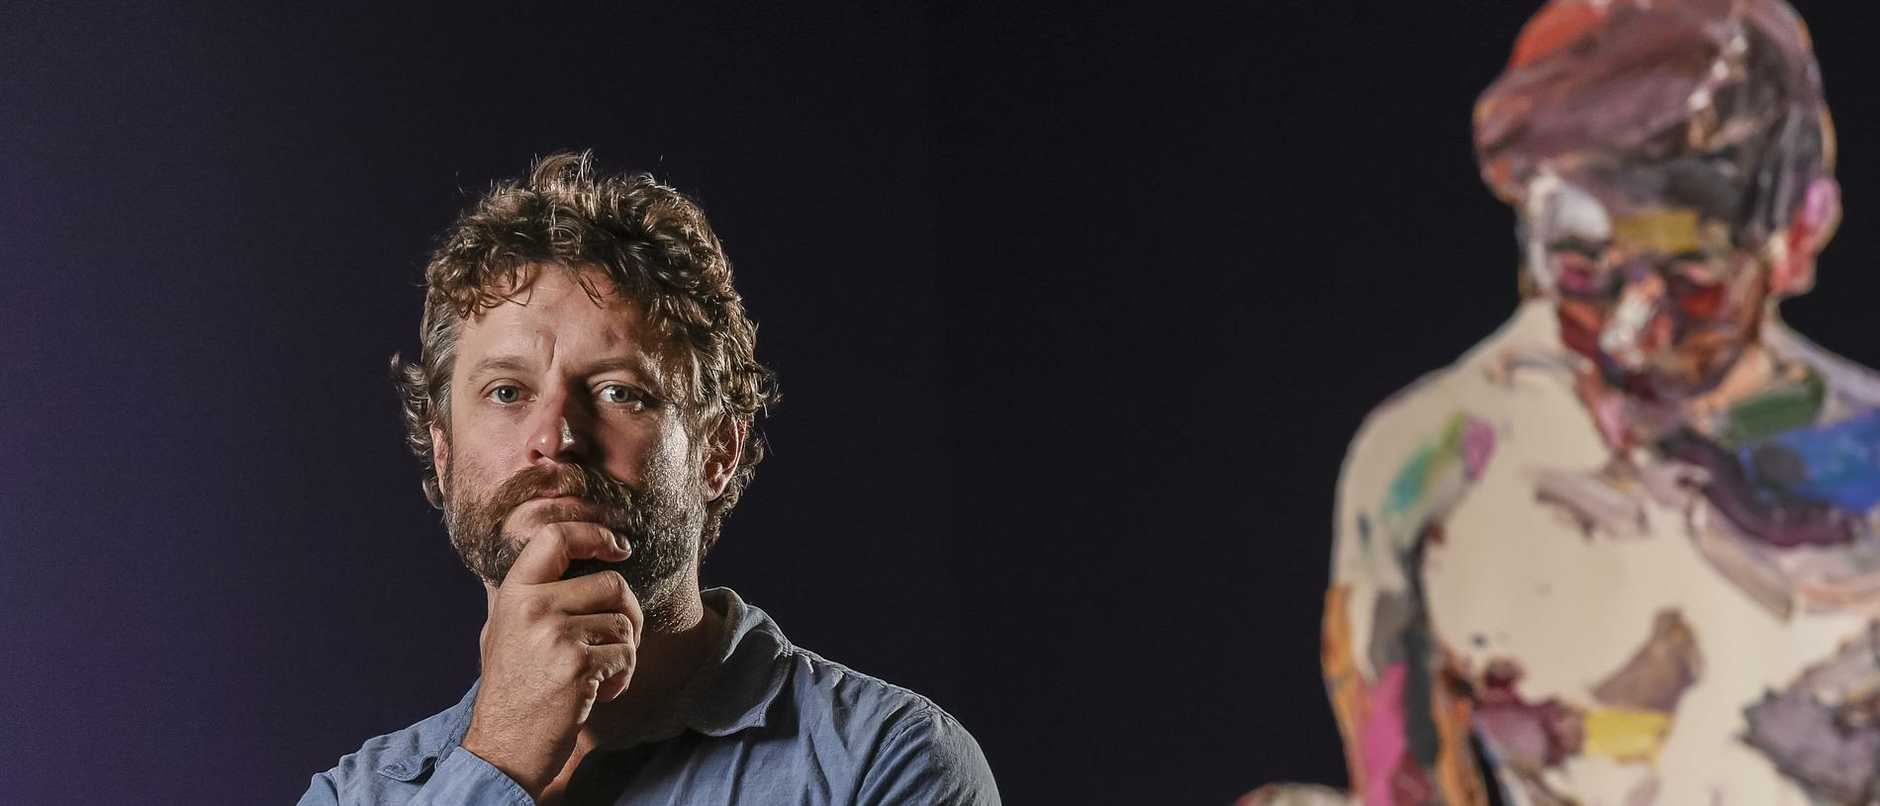 Australian artist Ben Quilty is backing the call for a Royal Commission into shocking rates of suicide among war veterans.